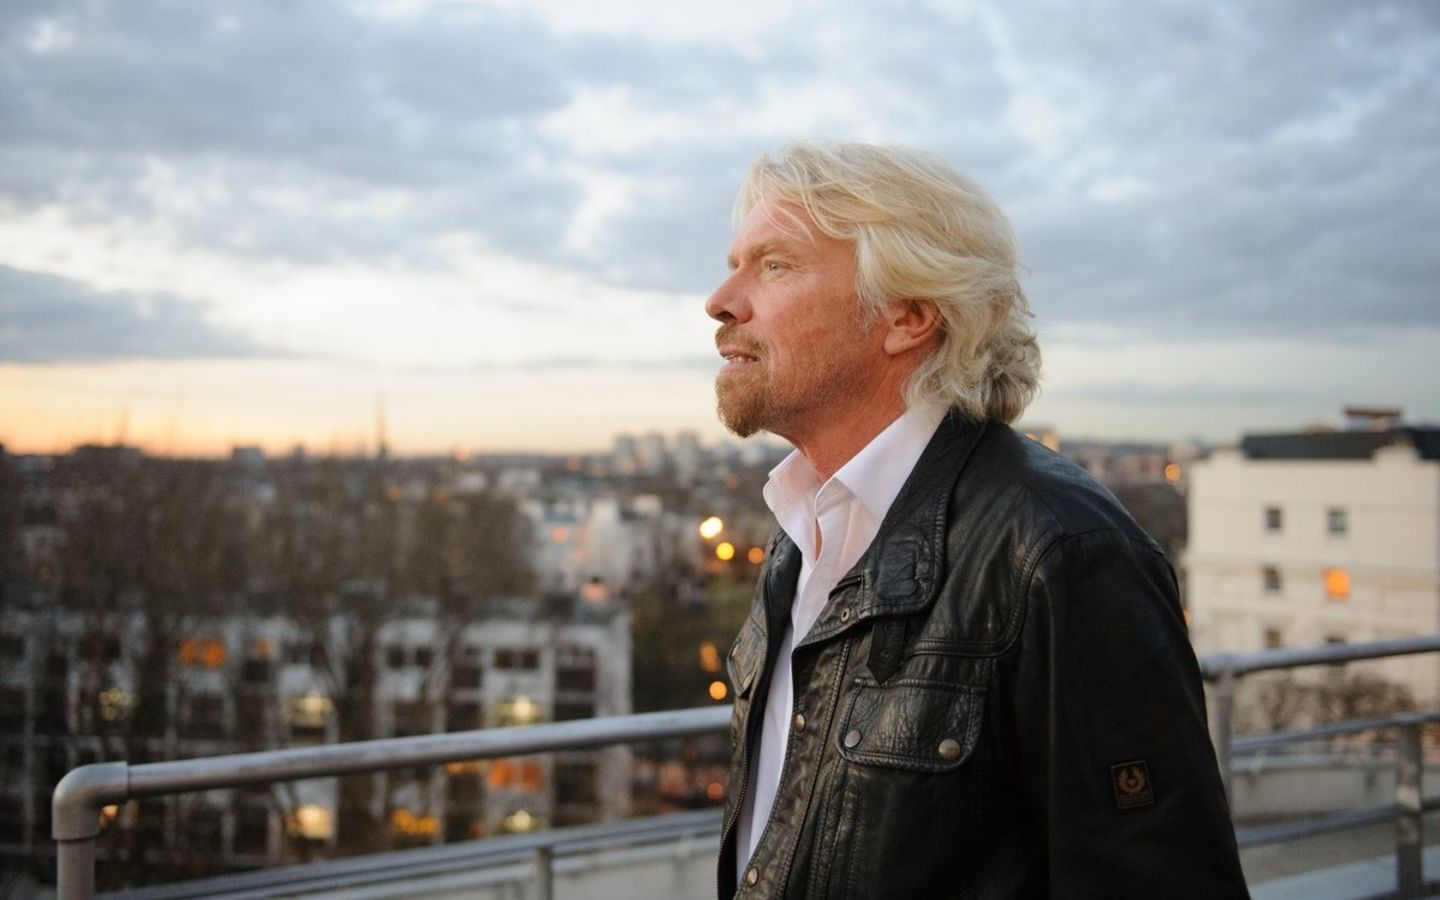 Richard Branson on the rooftop of the Battleship building looking into the distance